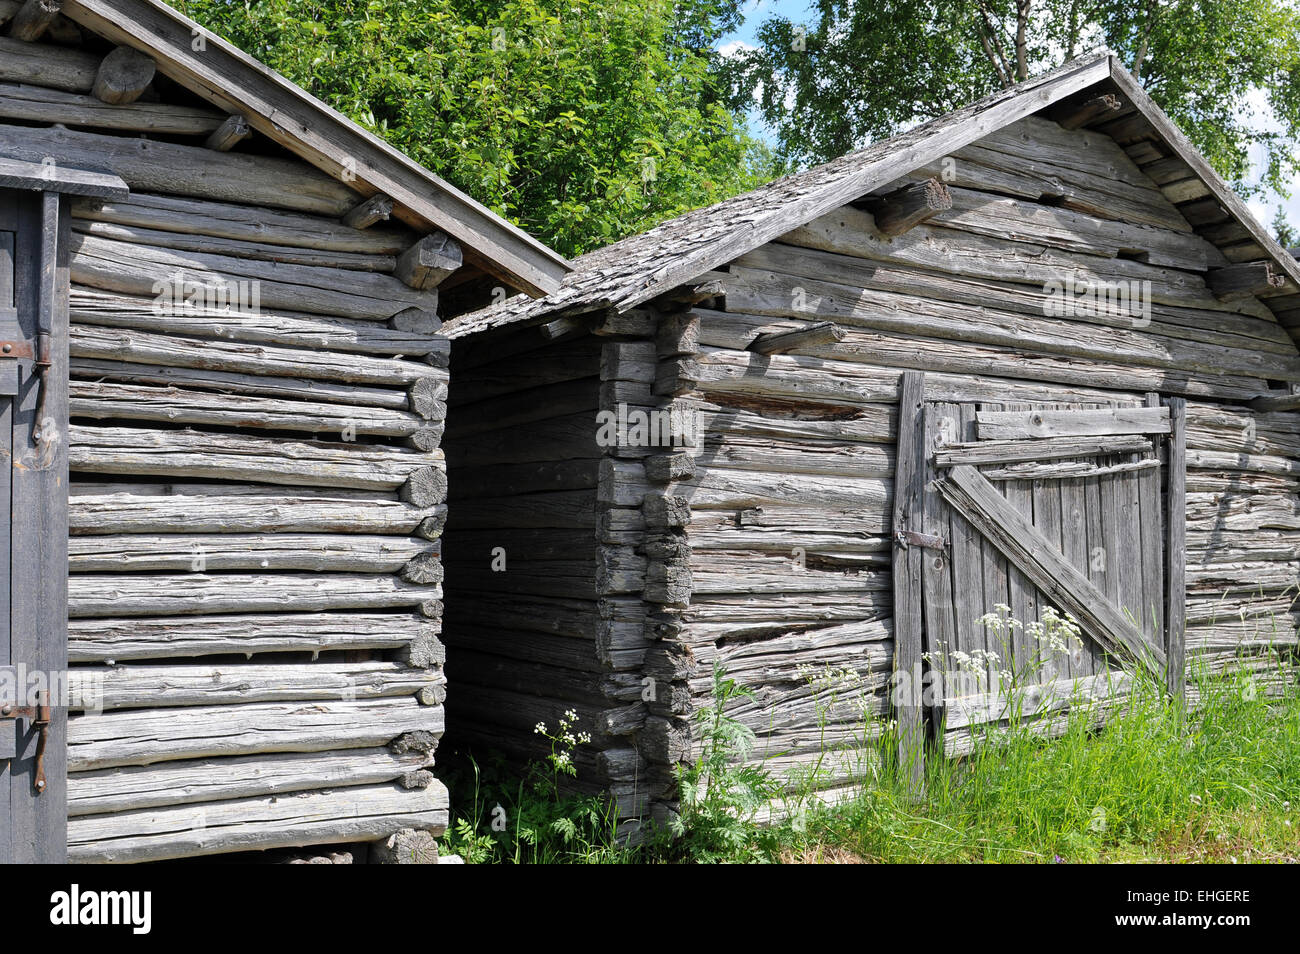 Holzhaus / Wooden house - Stock Image